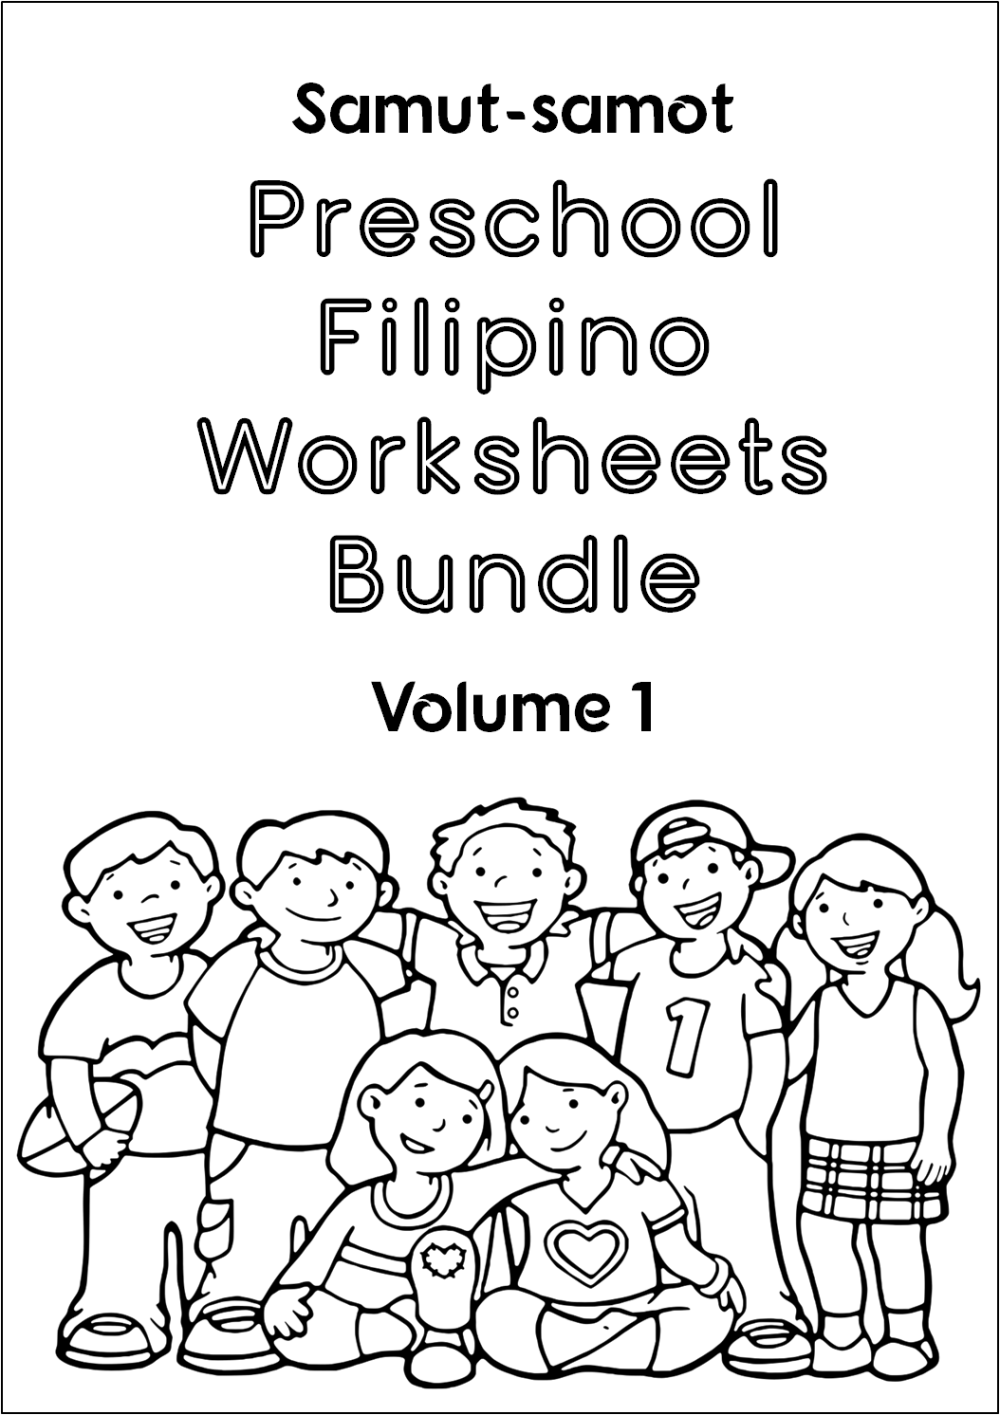 medium resolution of Preschool Filipino Worksheets Bundle Vol. 1 - Samut-samot